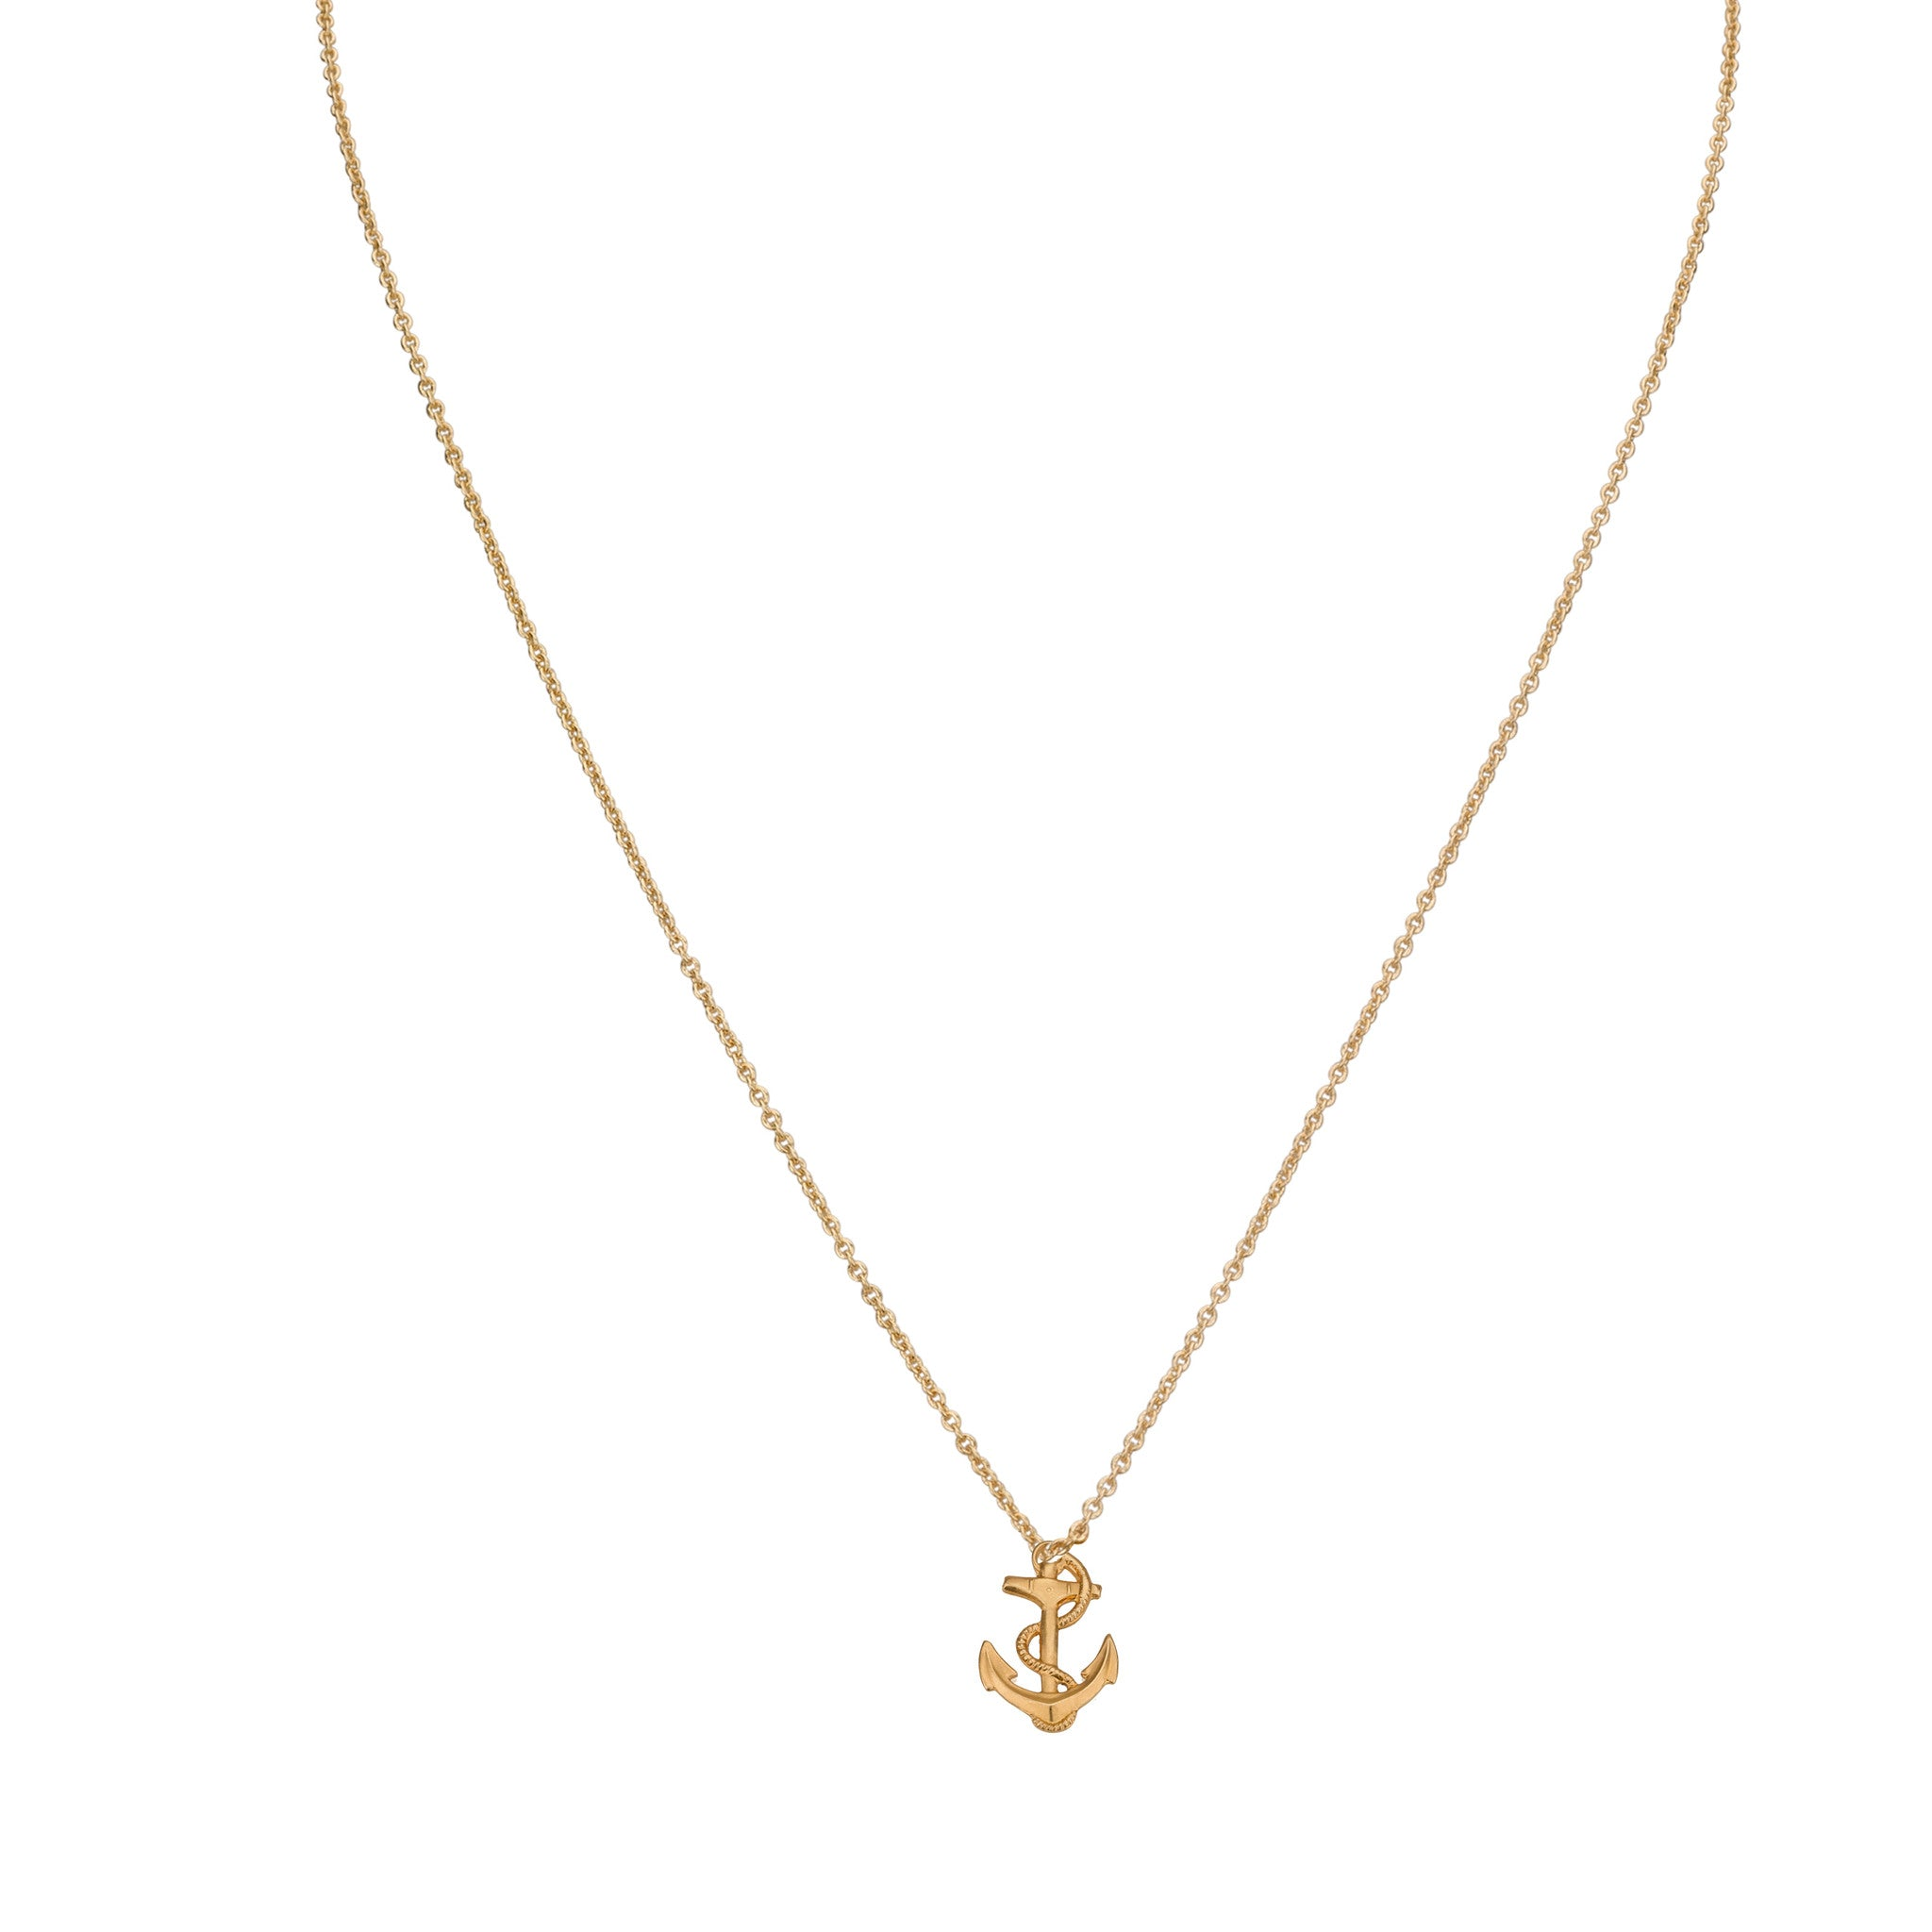 anchor free shipping link product necklace today chain gold plated long isla karat simone watches polished jewelry overstock